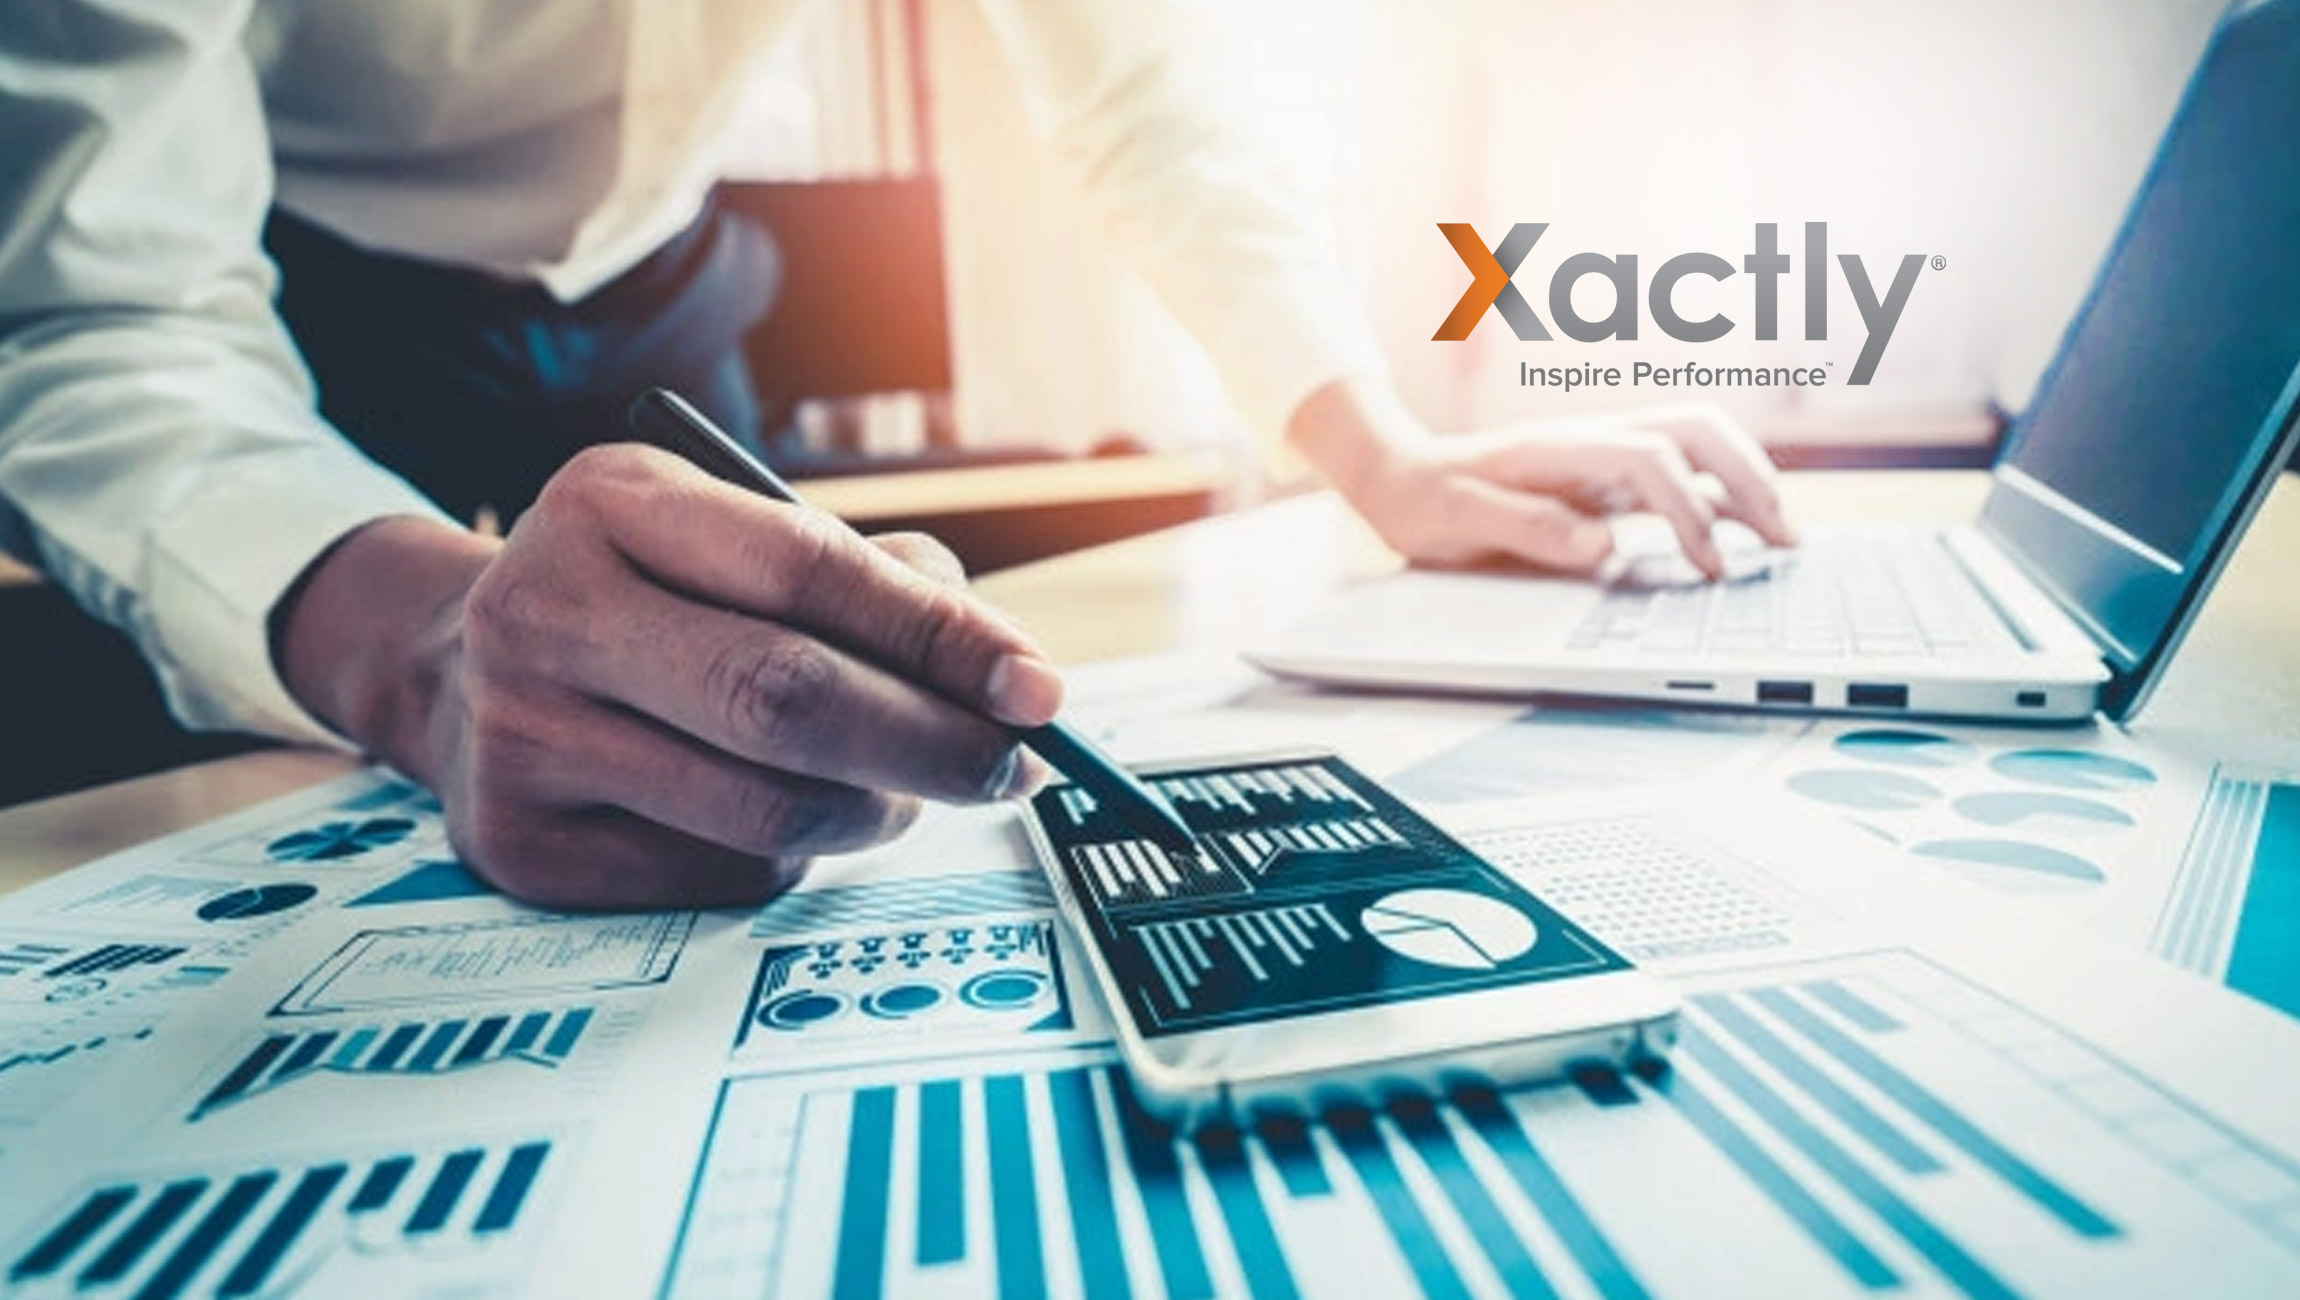 Groundbreaking Research From Xactly Highlights The Disruptions That Transformed Sales Organizations In 2020, Presents An Outlook For The Future